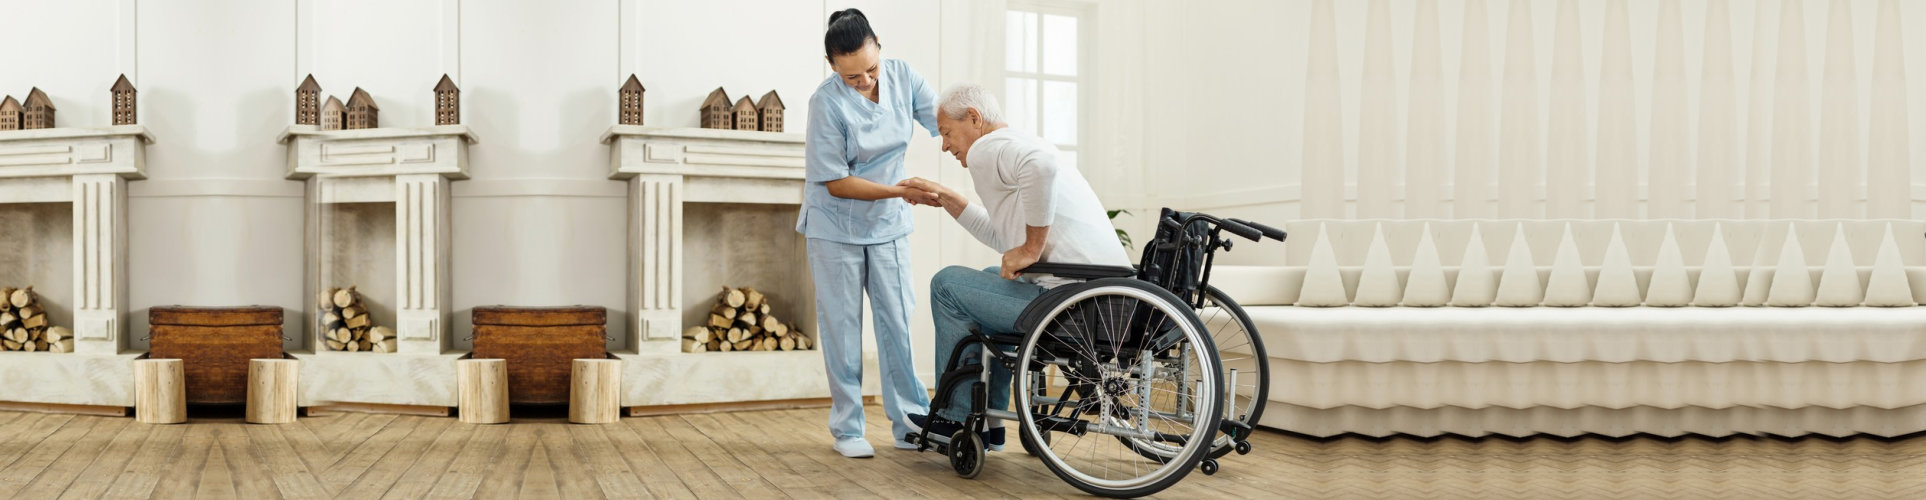 senior man using caregivers help and getting out from the wheelchair while wanting to sit on the sofa